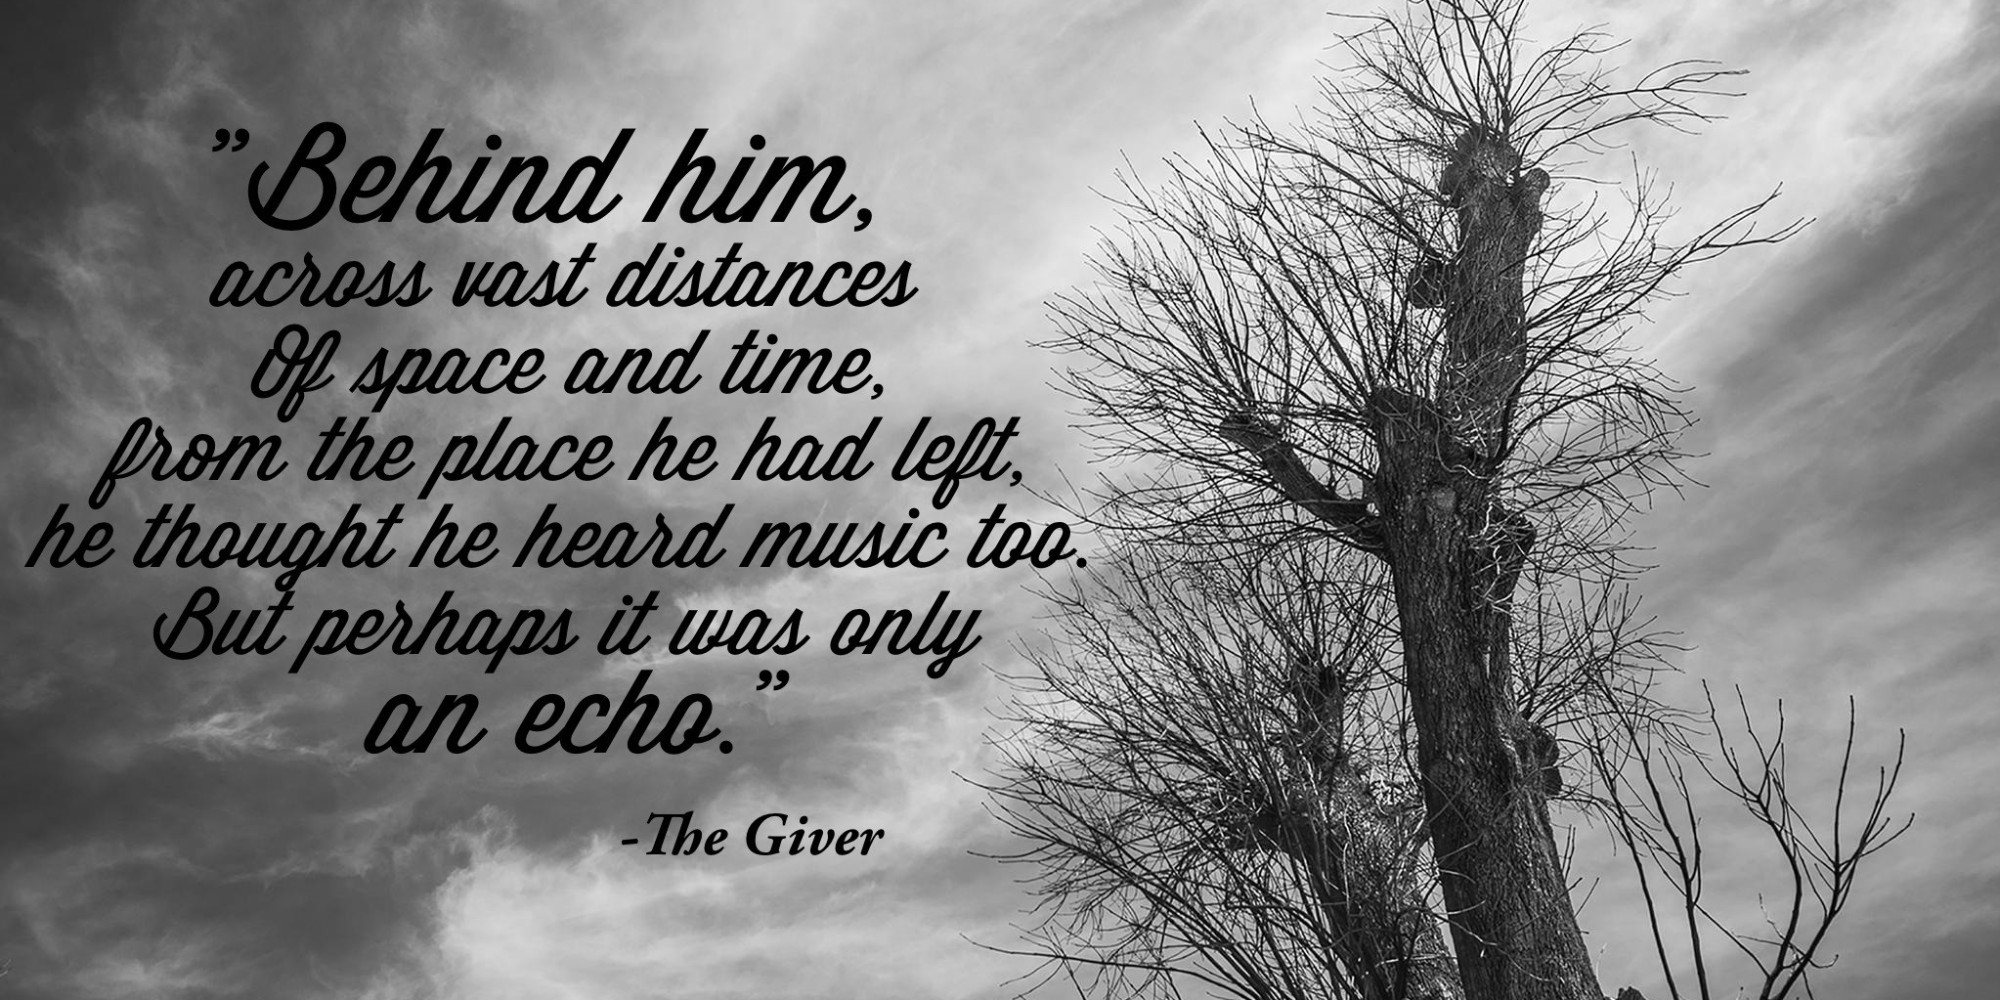 The Giver Book Quotes 10 Gorgeous Quotes From Banned Books Images  Huffpost